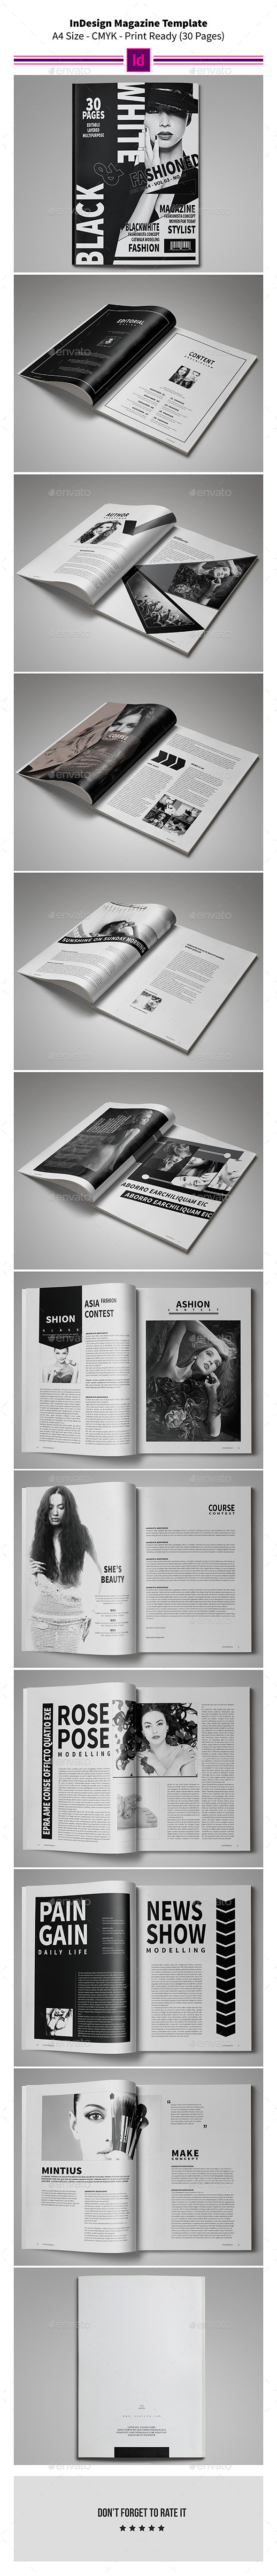 GraphicRiver Black & White Magazine Template 9054239